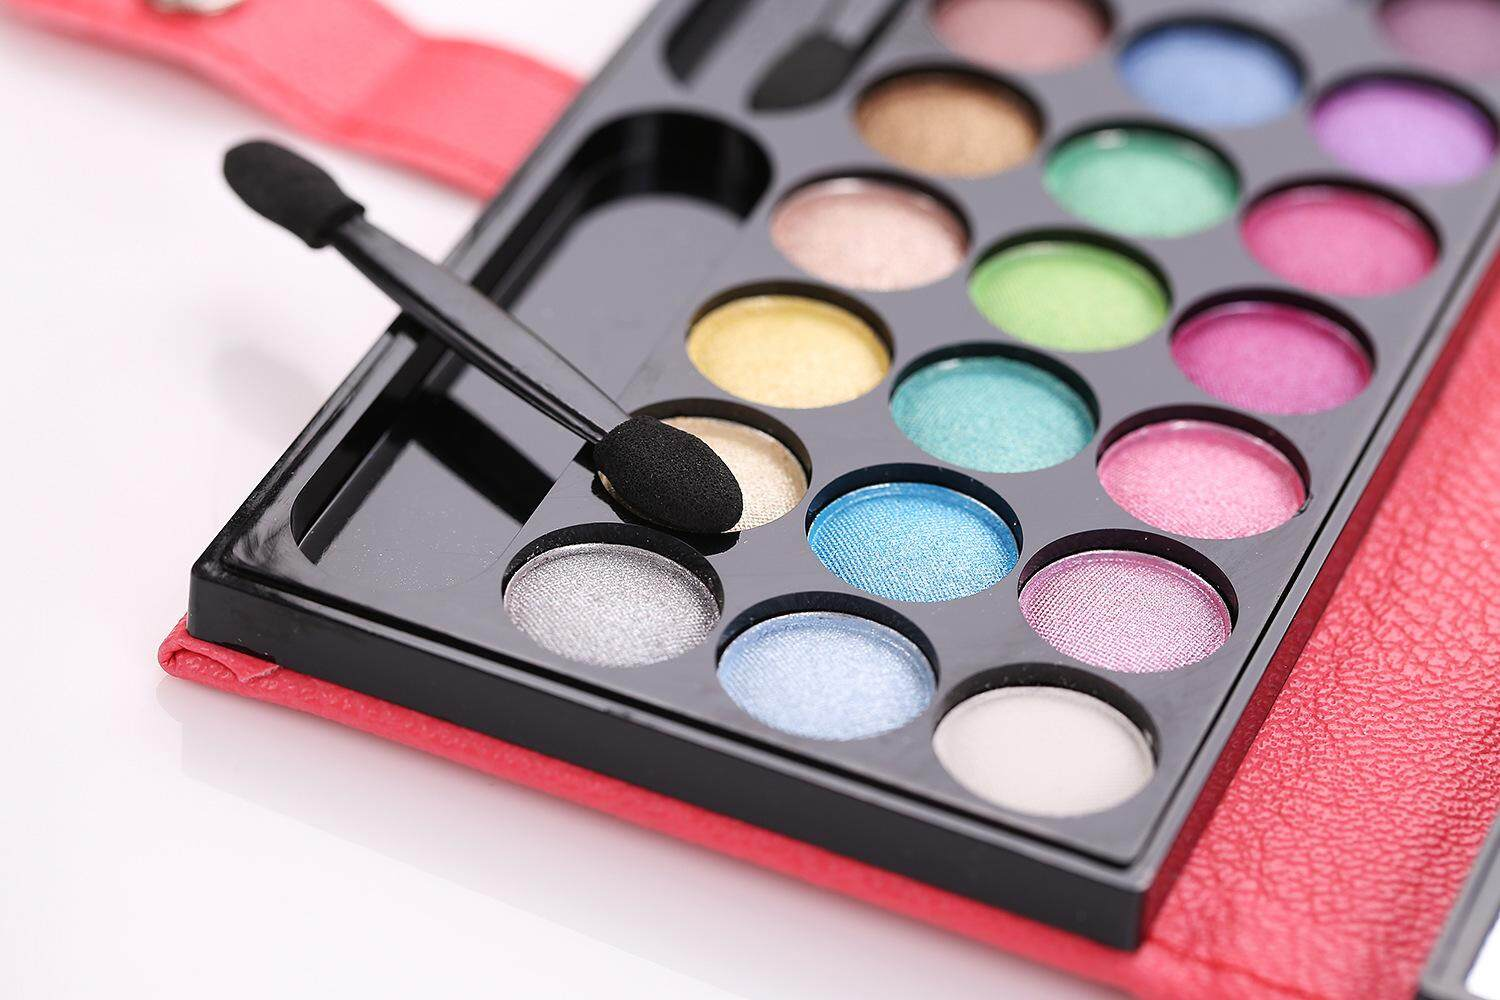 33 Colors Matte Luminous Palette Cosmetic Eye Shadow Colorful Smoky Eyeshadow Glitter Palette Lipstick with Foundation